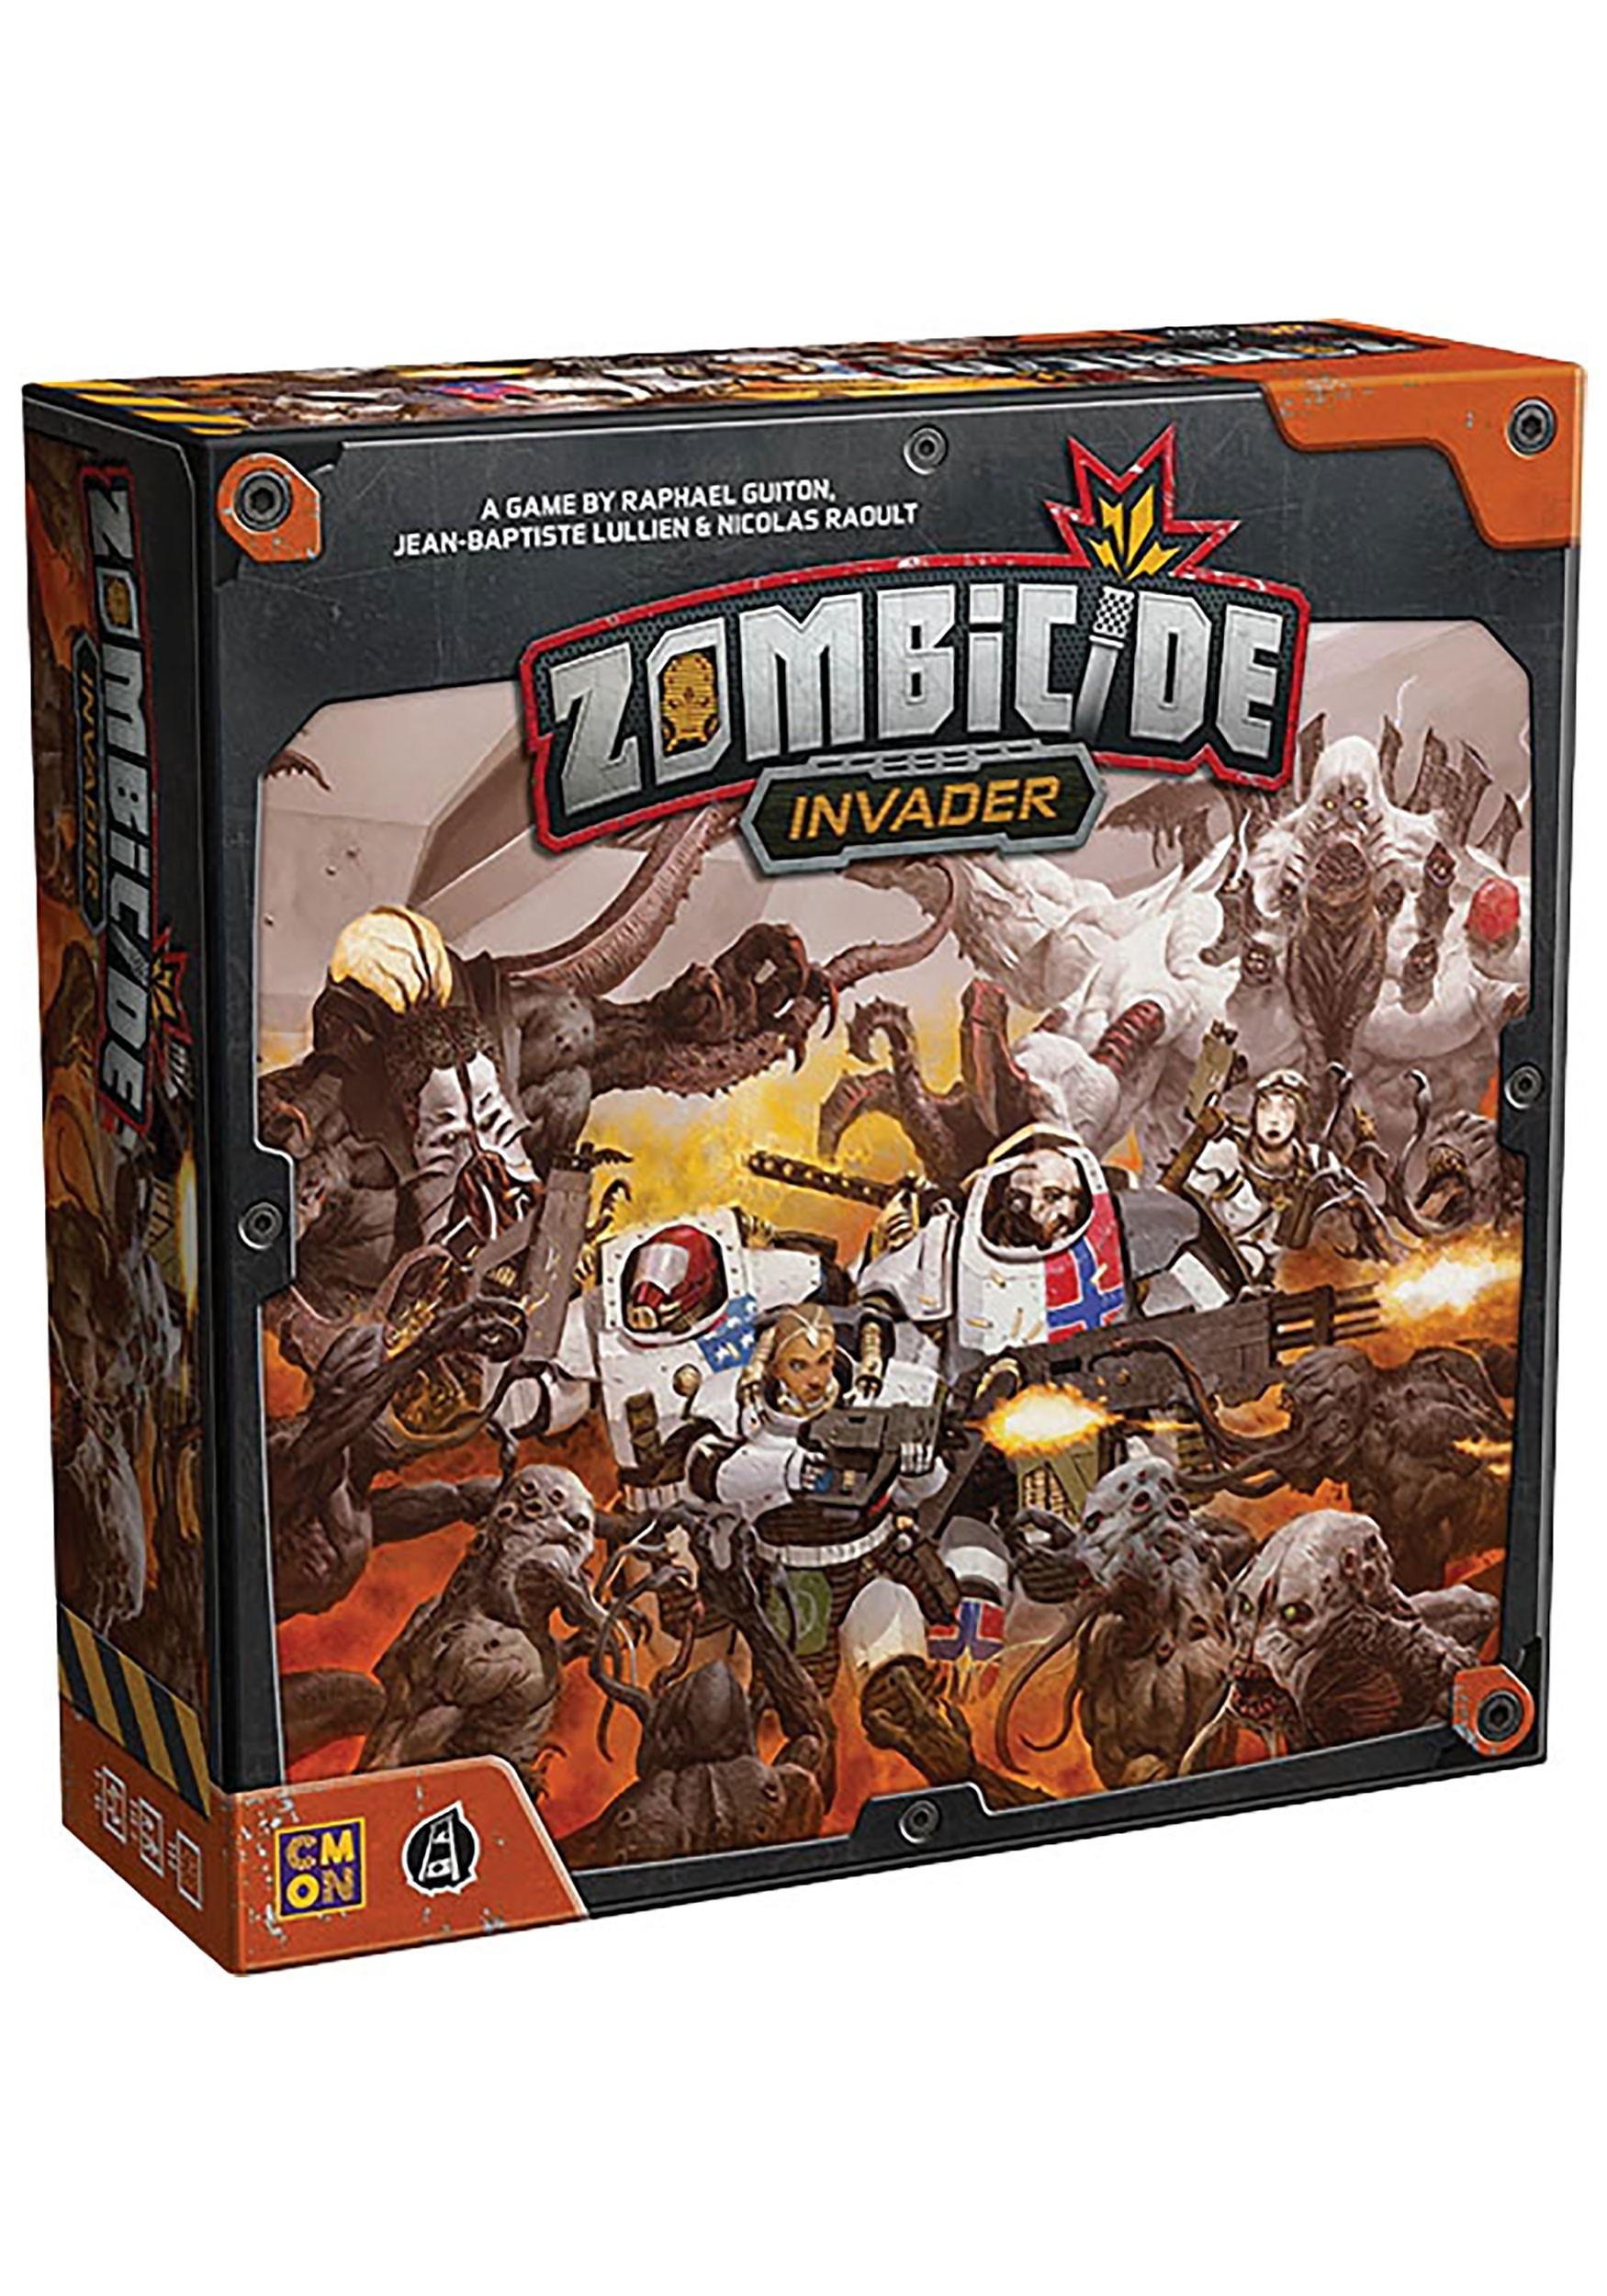 The_Zombicide_Invader_Board_Game